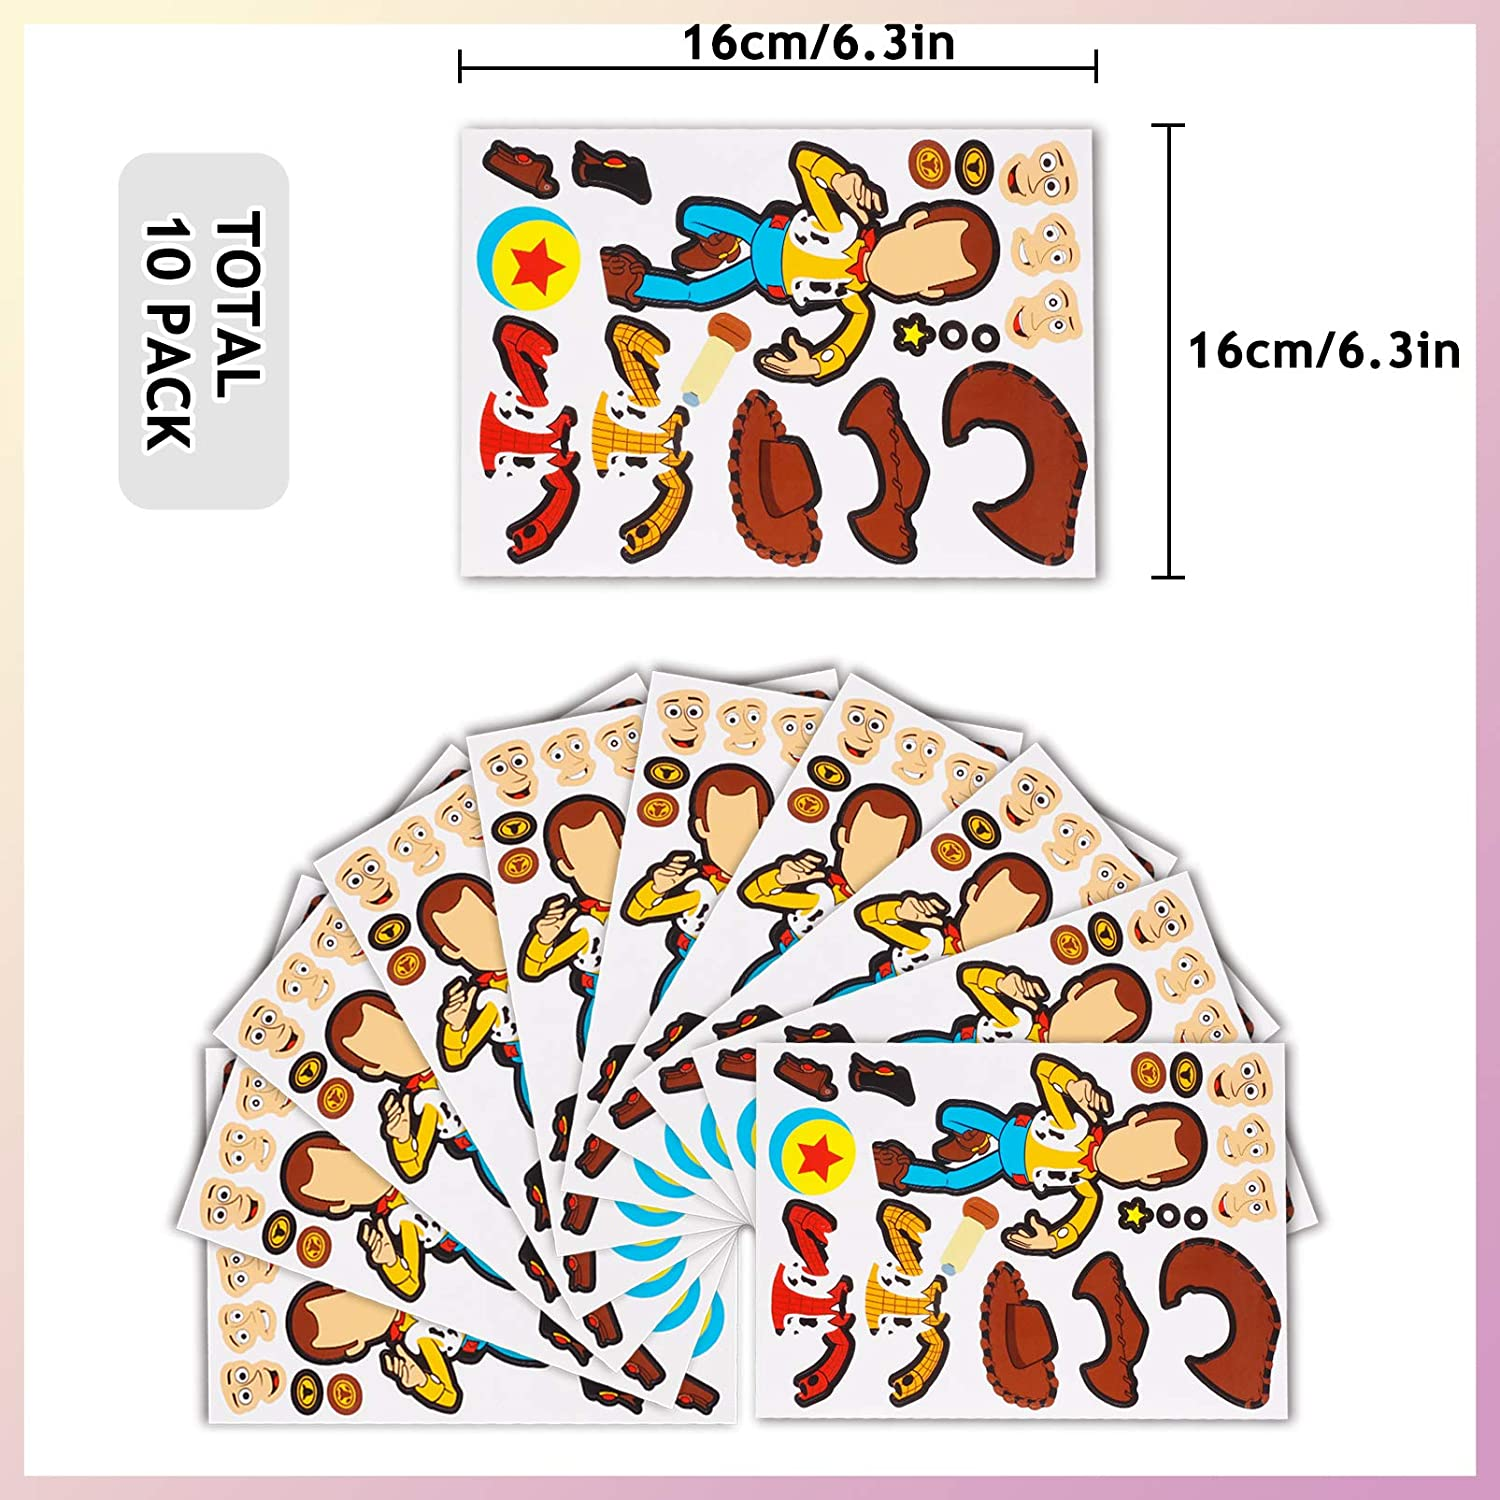 Party Supplies Favors Gift for Kids 10 Sheets Make a Face Stickers Birthday Decorations Boys Girls Kids Classroom School Prizes Rewards Goodies Bags Crafts Christmas Valentine Day